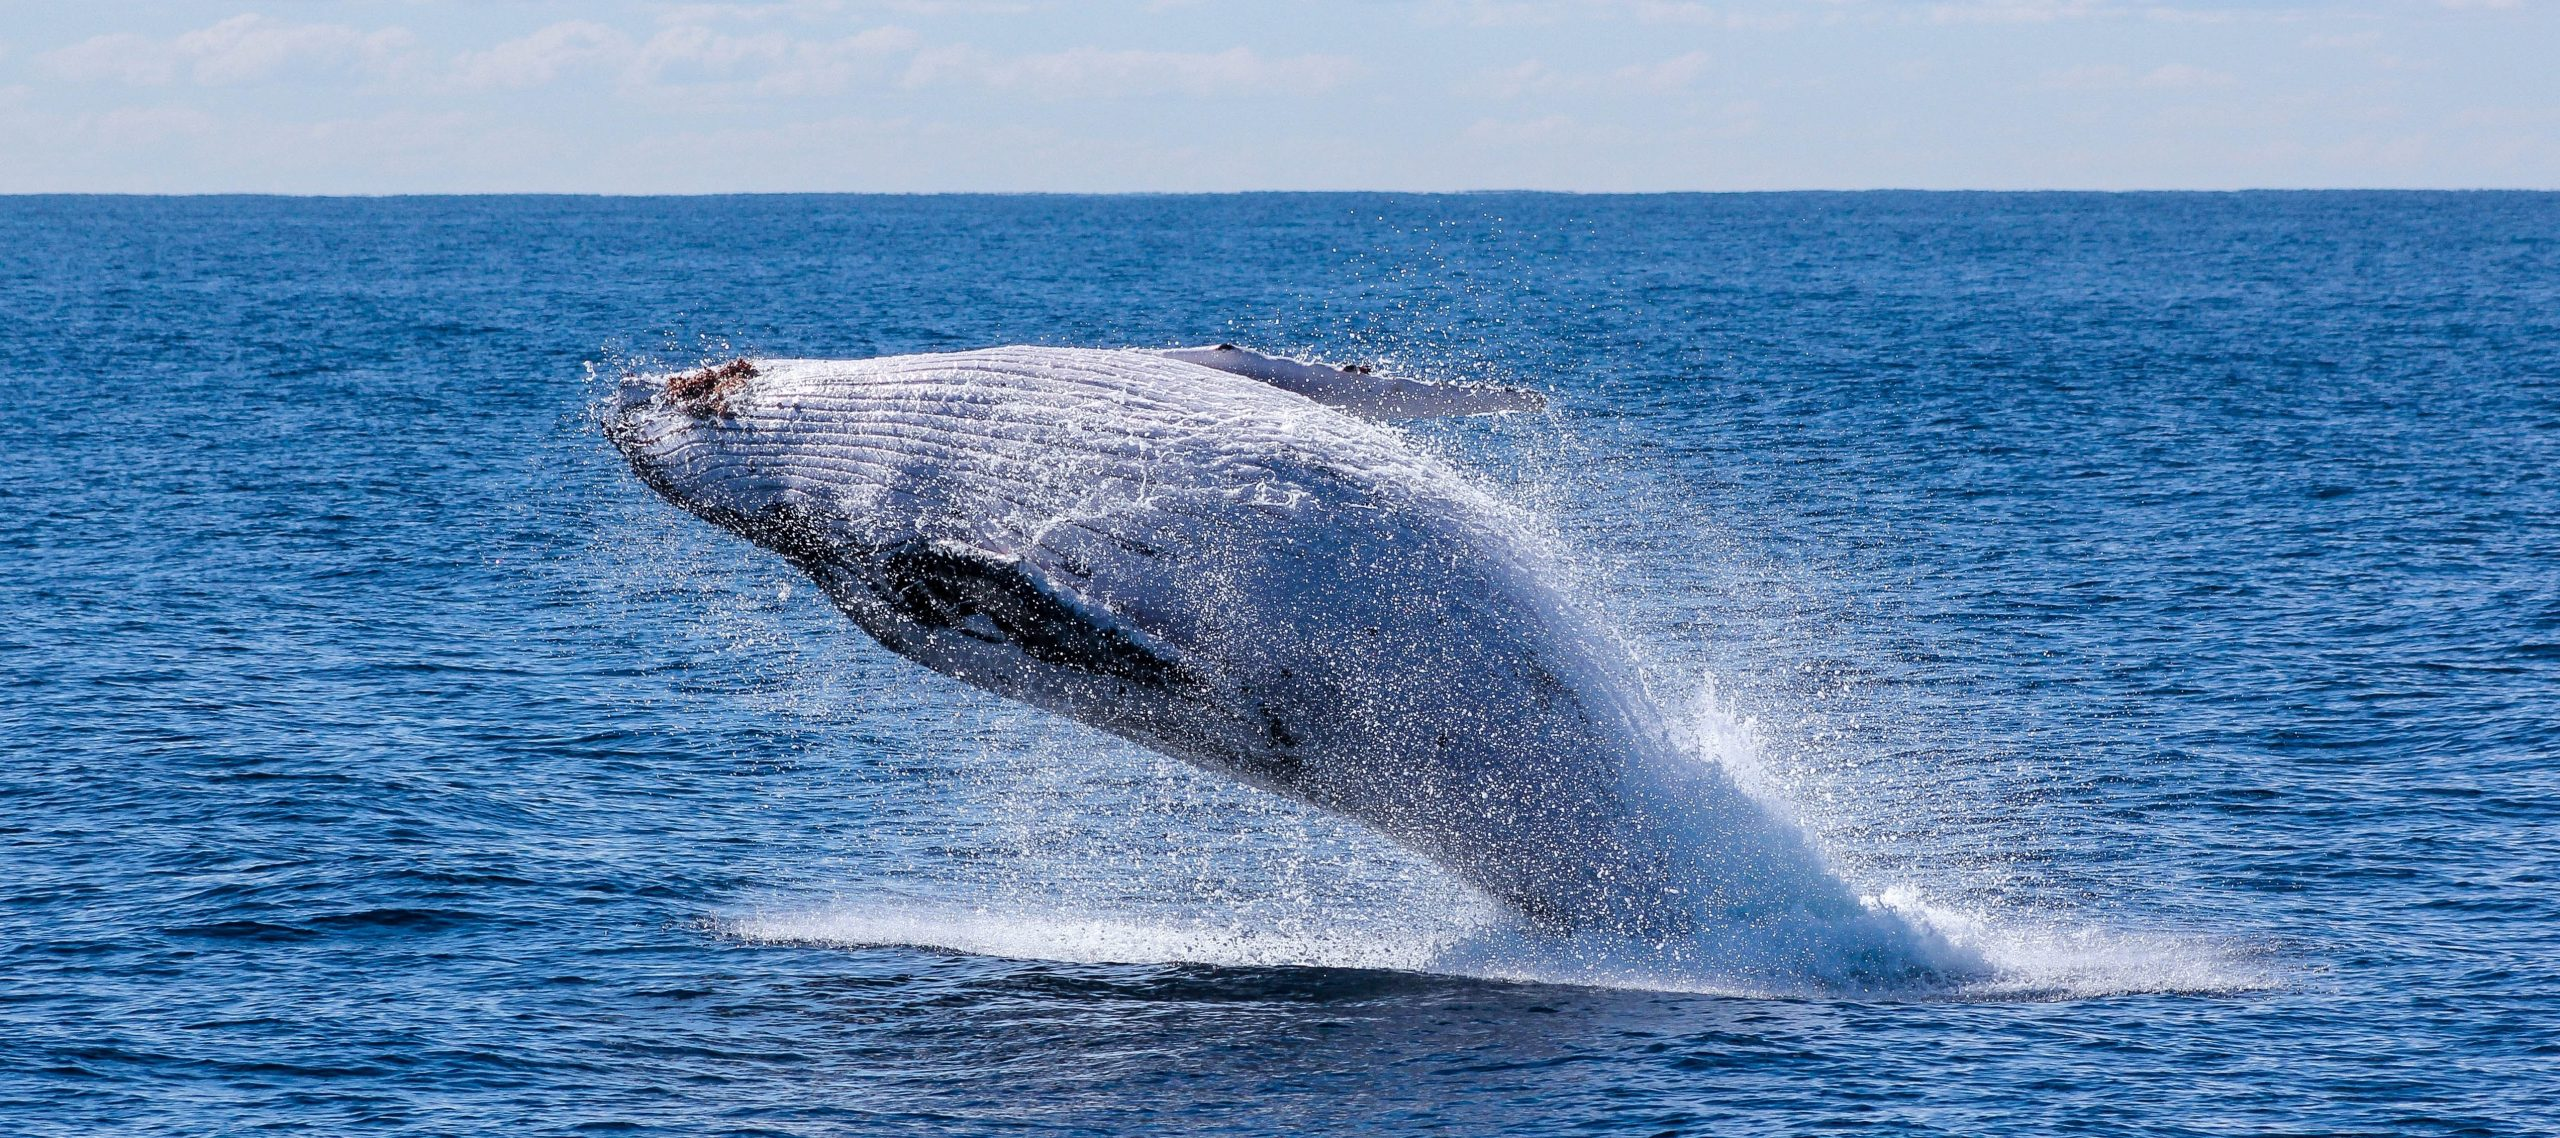 The Best Places for Whale Watching in Australia